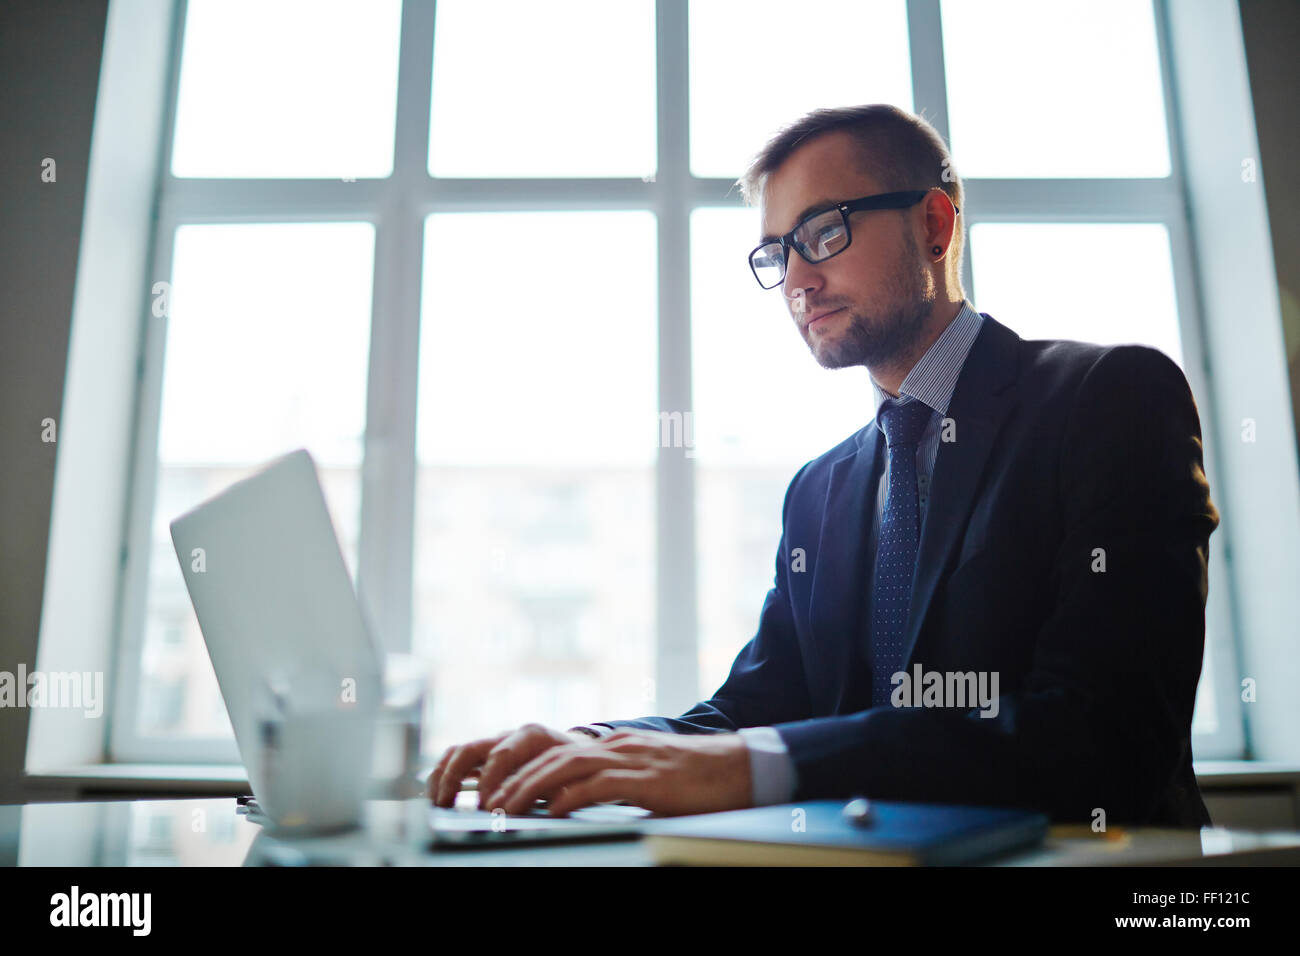 Confident young businessman analyzing electronic data in office - Stock Image